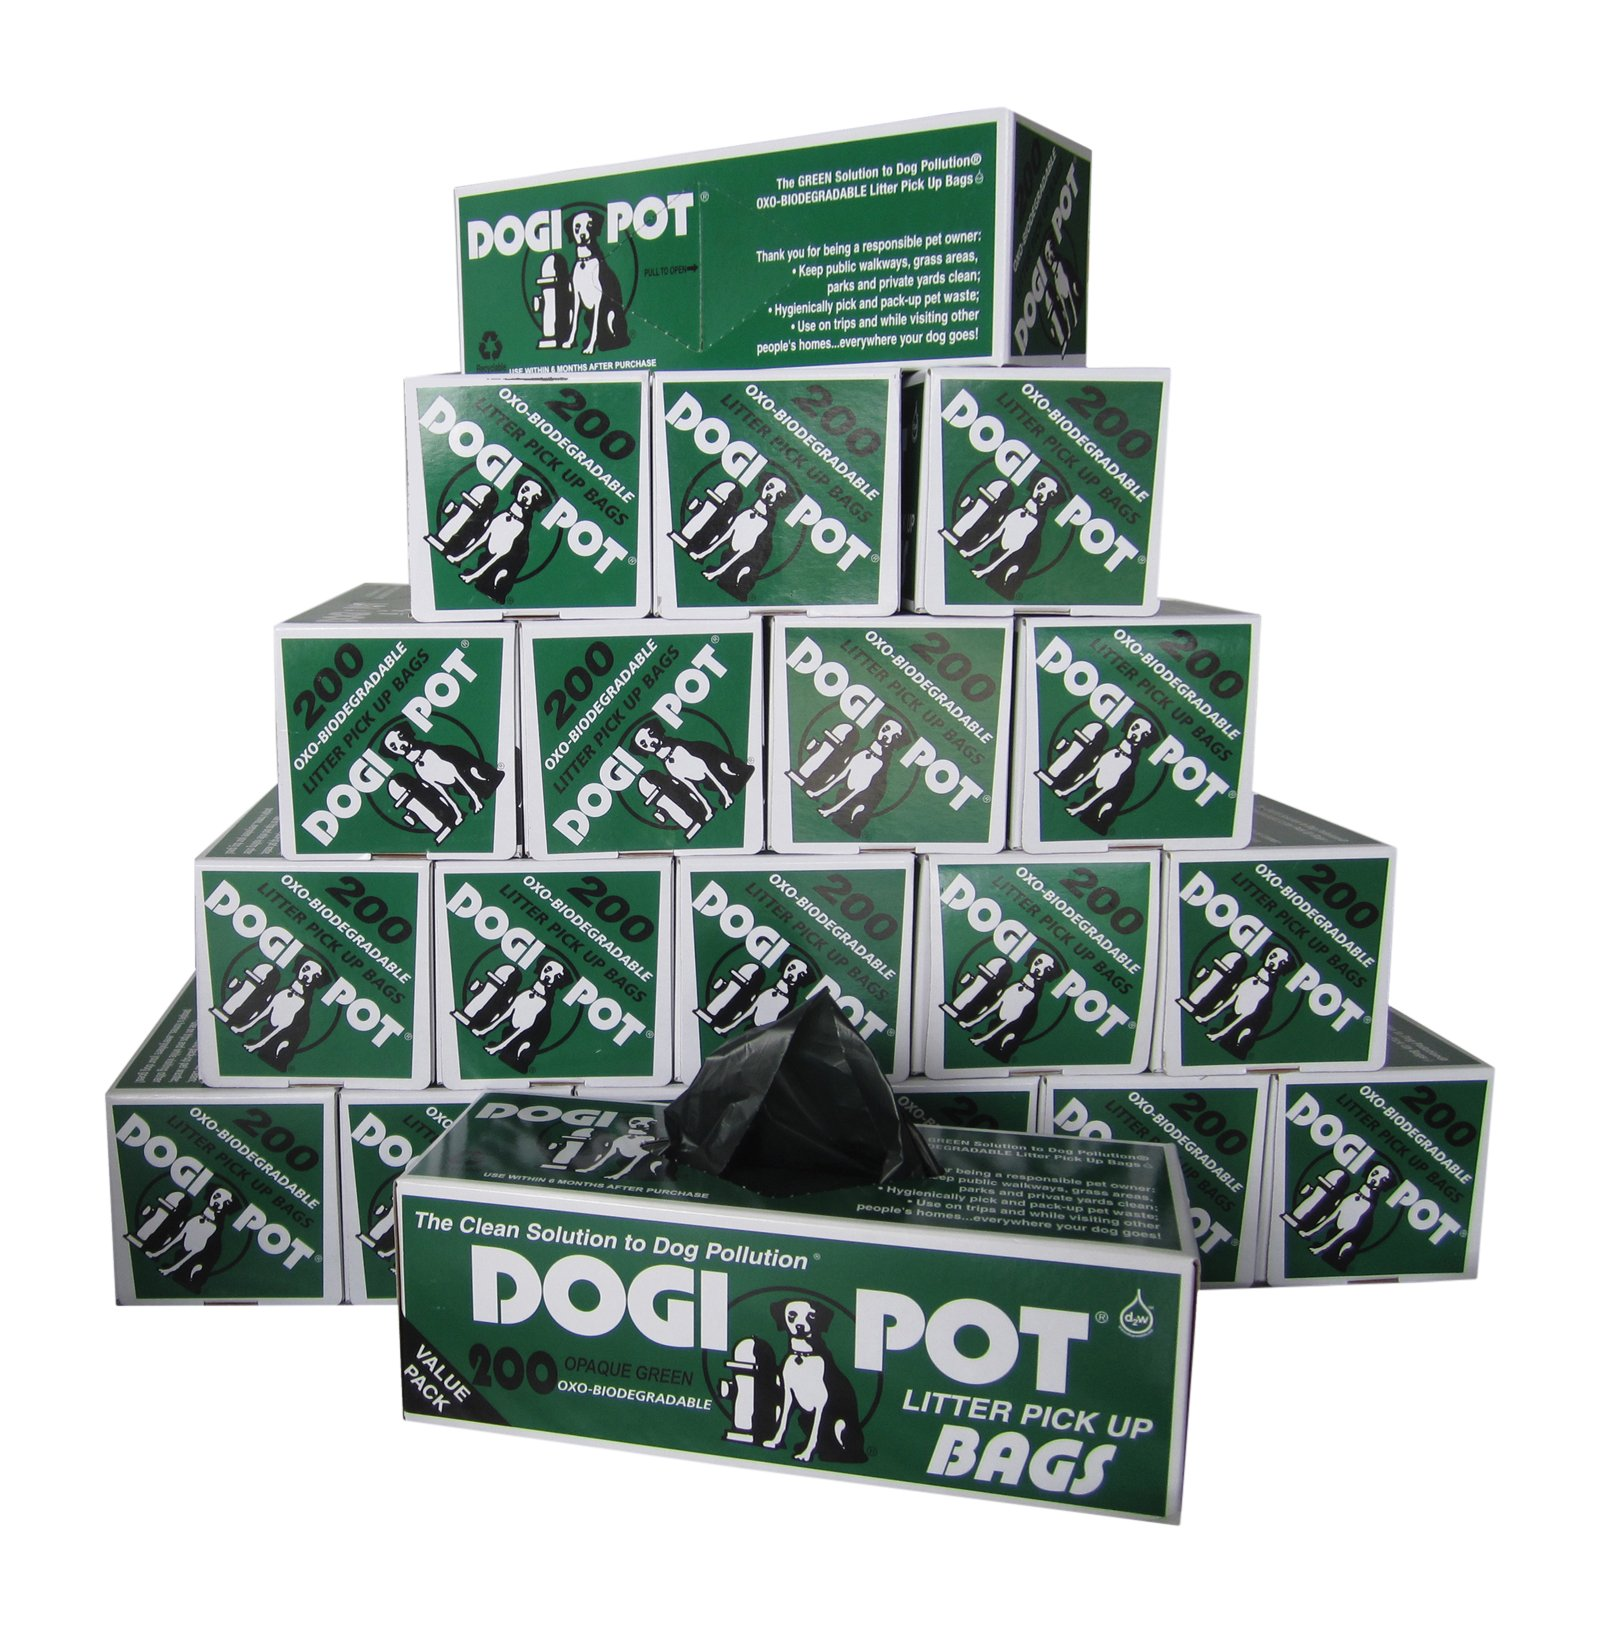 DOGIPOT 1402-20 20 Roll Case, Litter Pick up Bag Rolls, 200 Bags per Roll (4000 Bags)